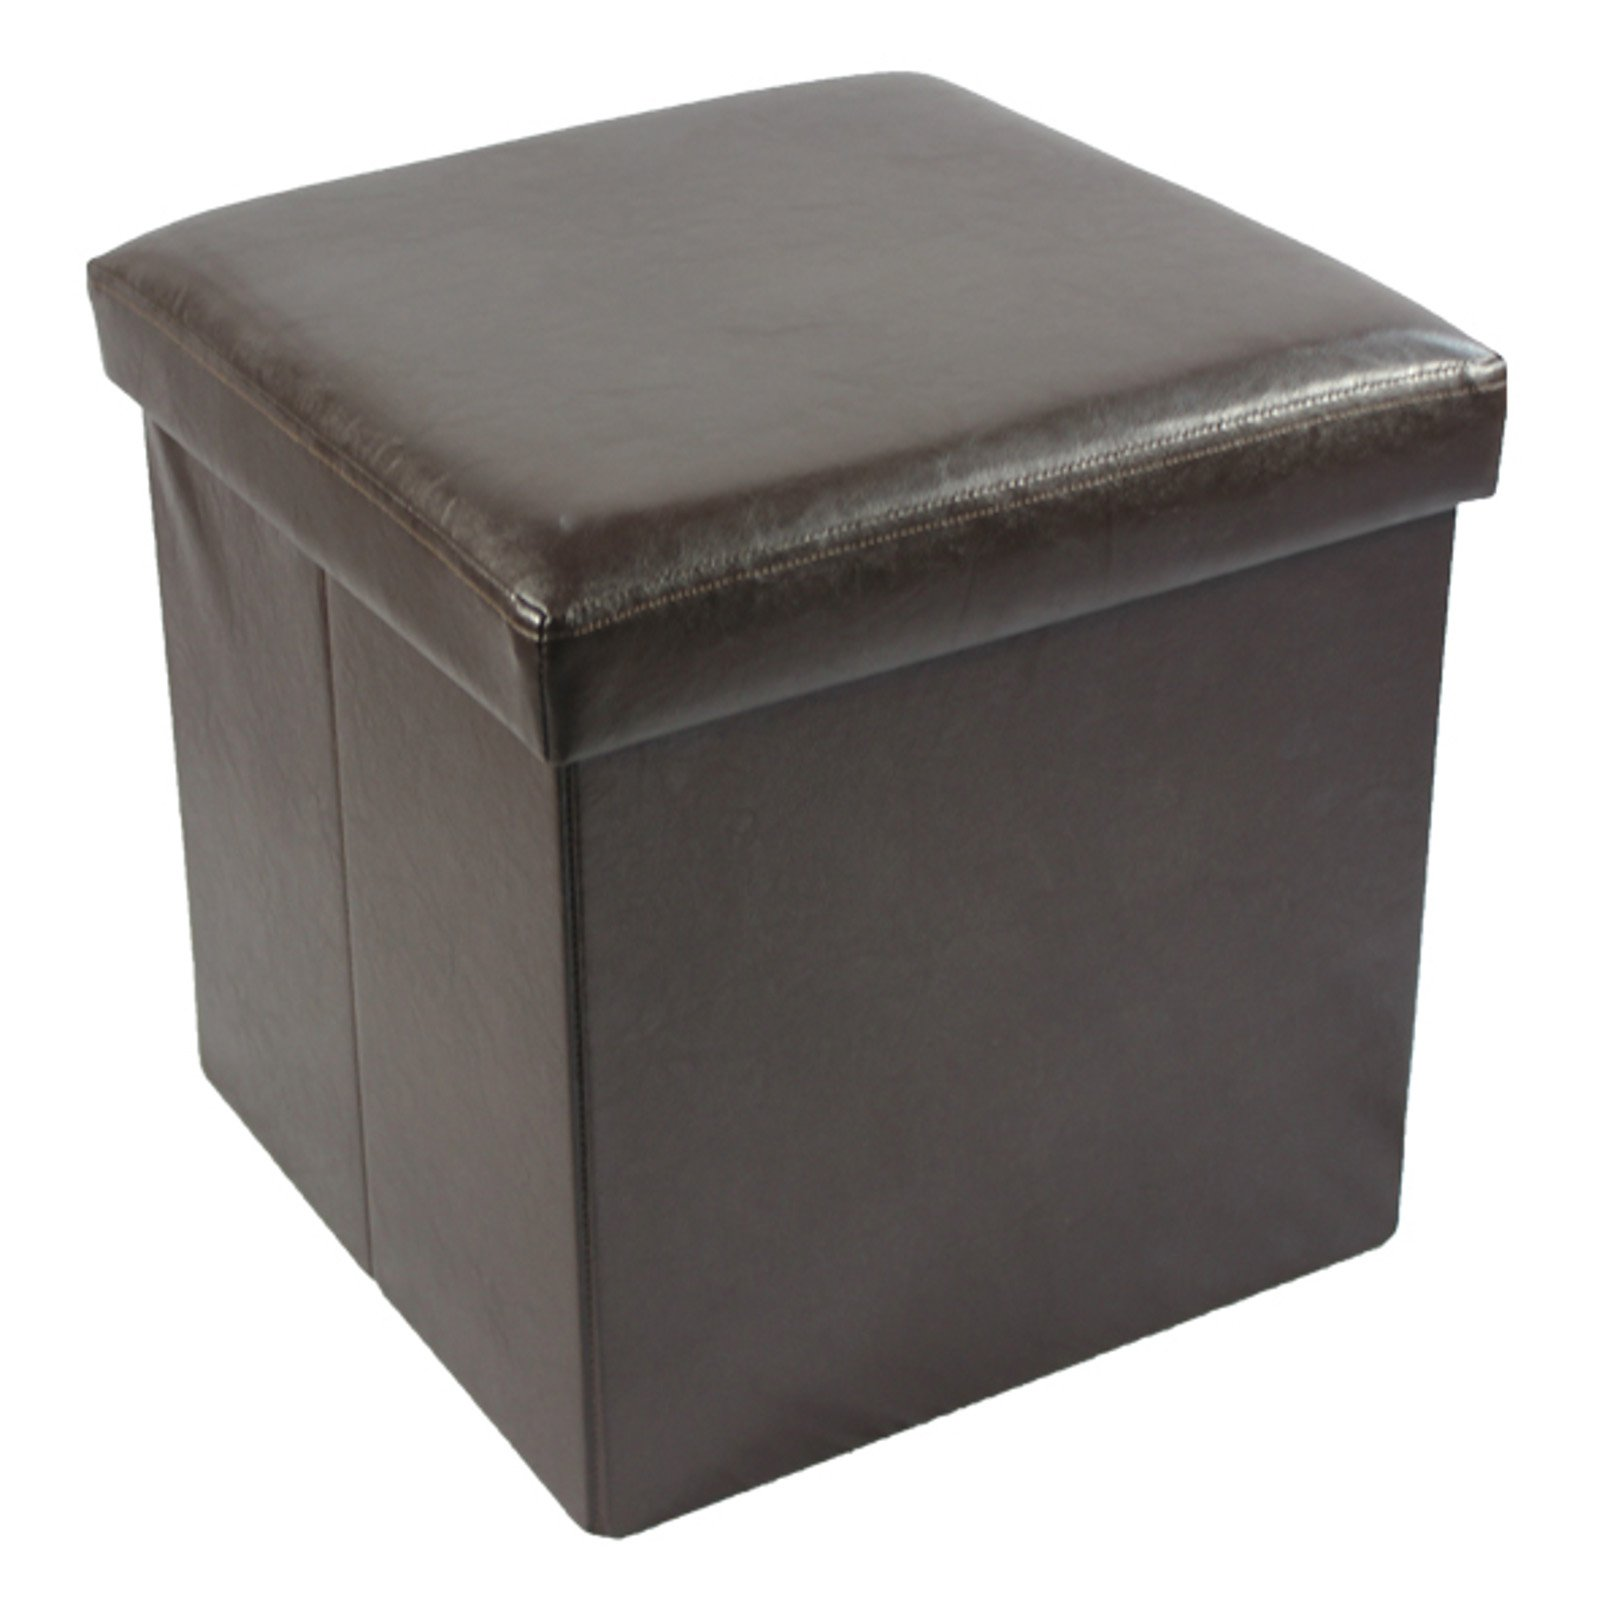 Collapsible Storage Ottoman, Faux Leather, 15x15 by Achim Importing Co. Inc